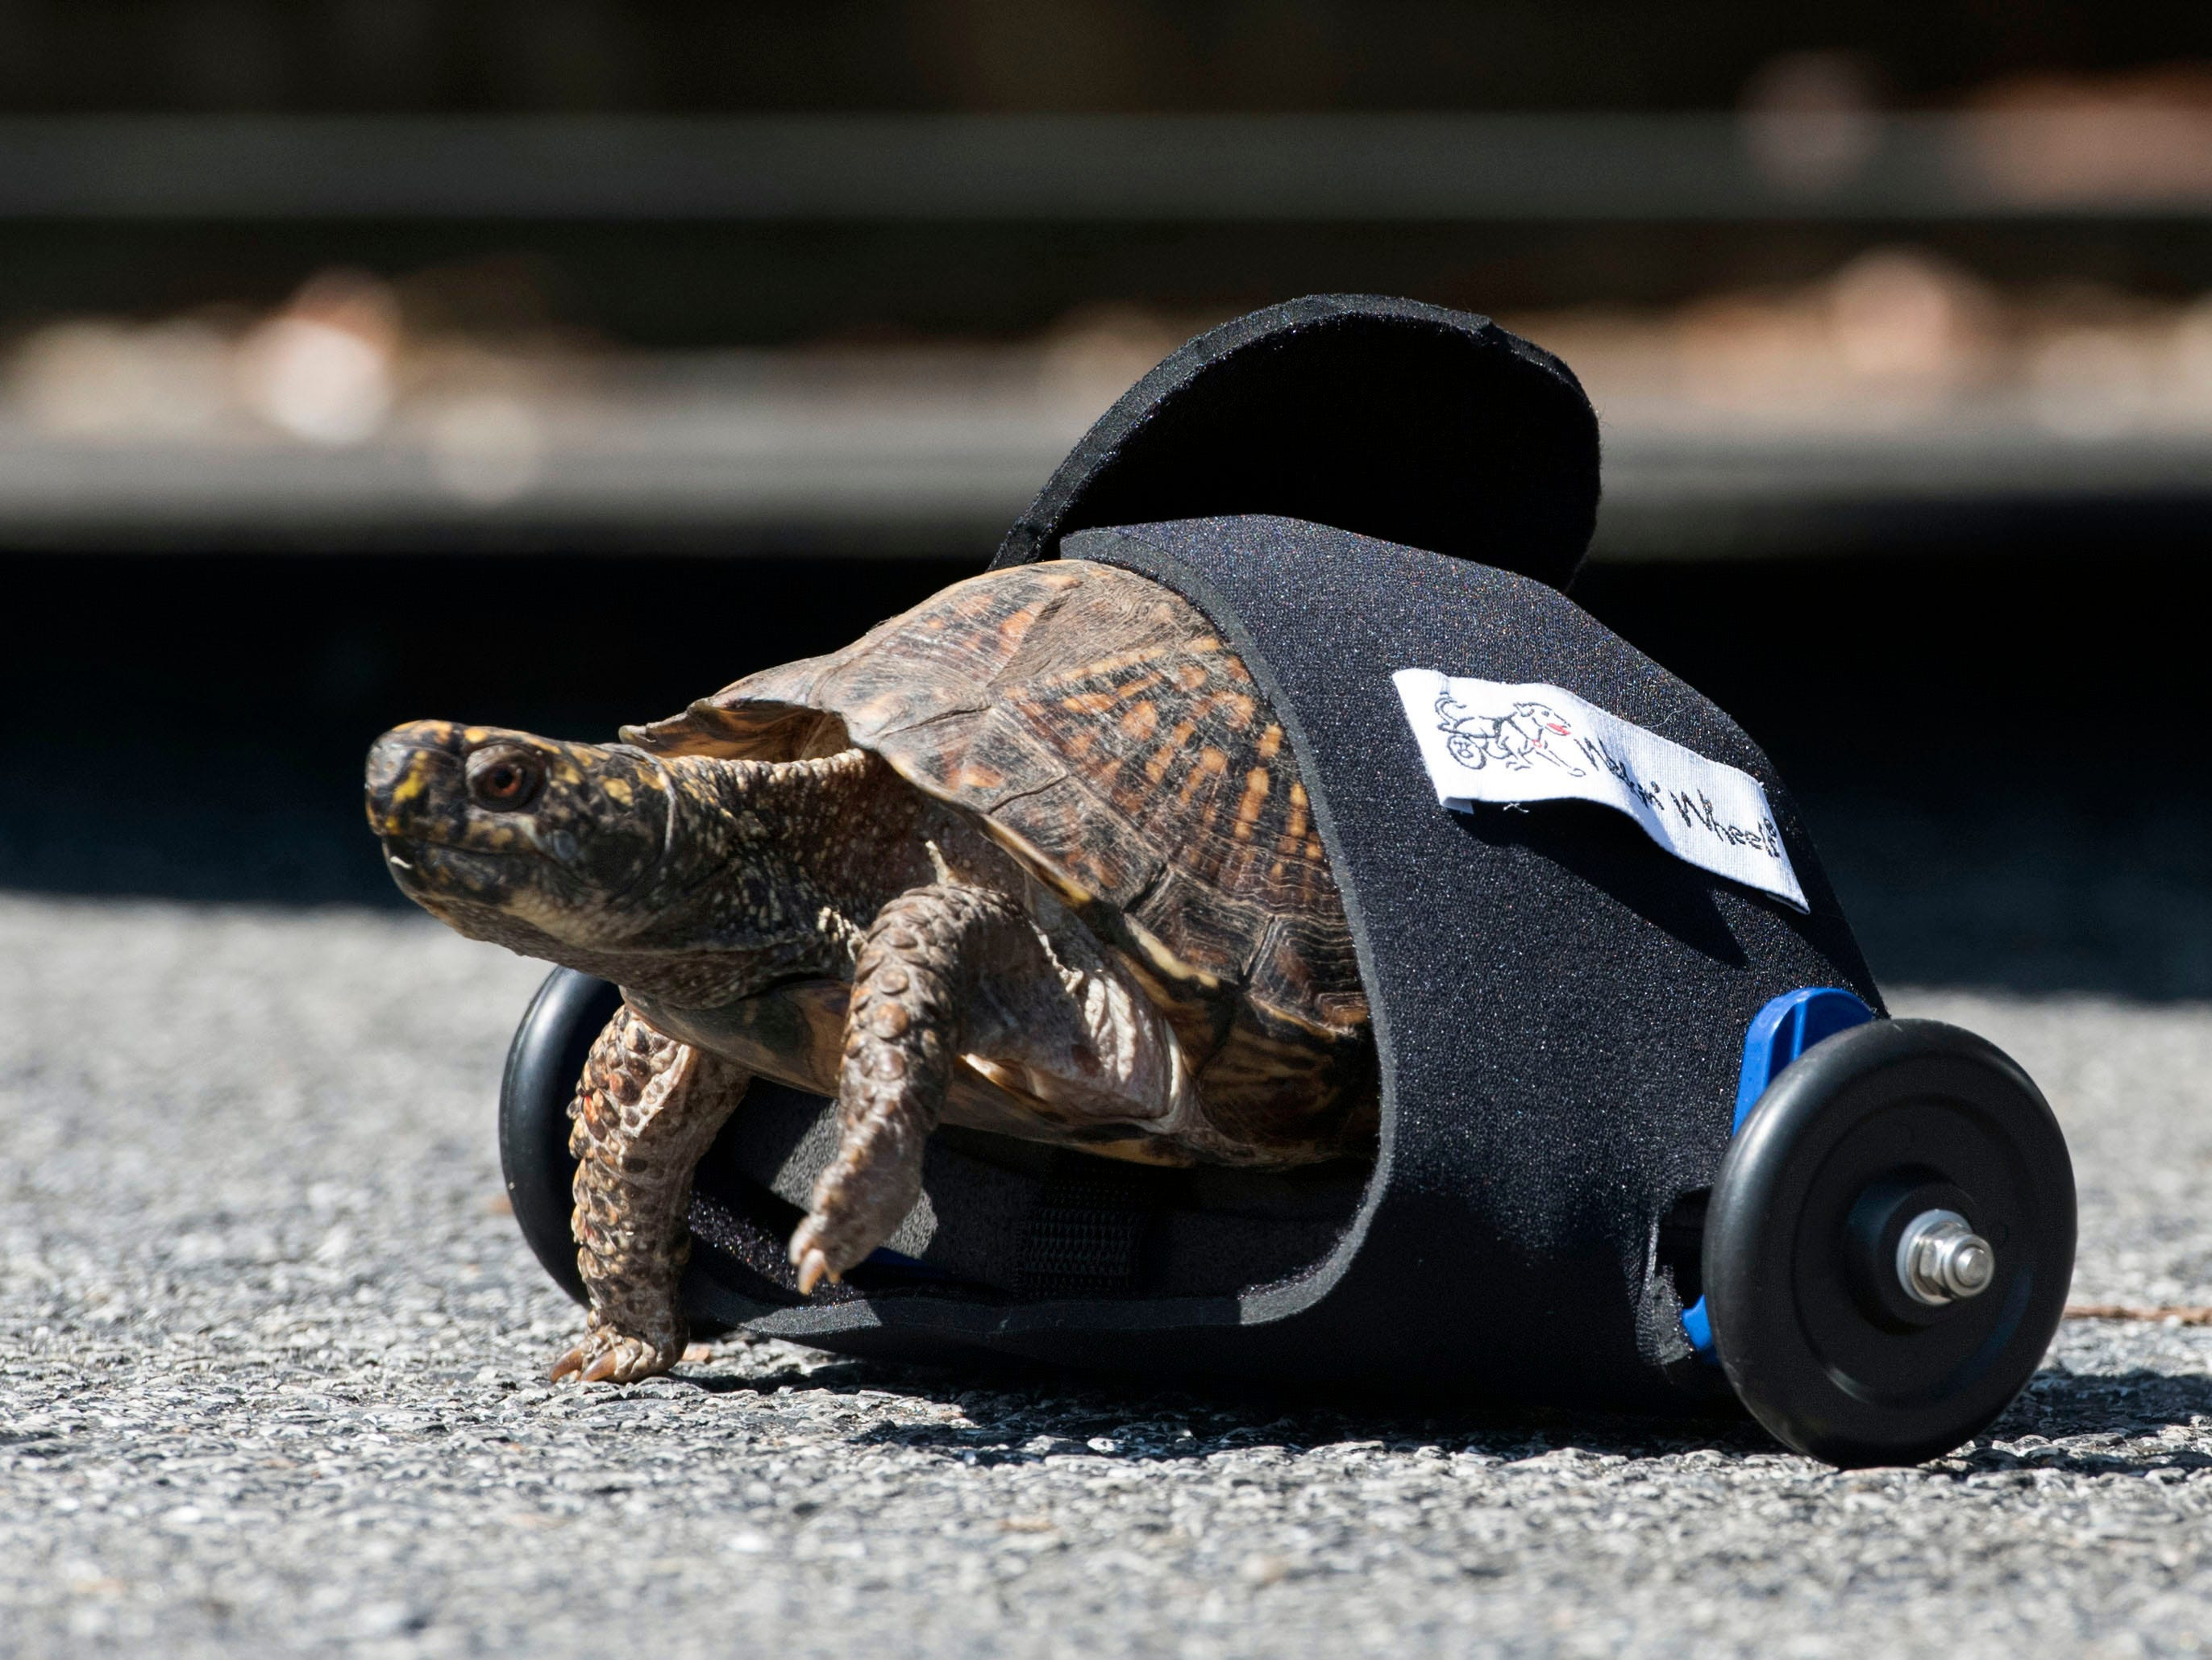 Scoot Reeves takes a walk around the parking lot a the Hillman Veterinary Clinic on North Palafox Street on Wednesday, May 15, 2019. The veterinary professionals at Hillman have outfitted the box turtle with wheels to give the reptile renewed mobility after an accident damaged its hind legs.